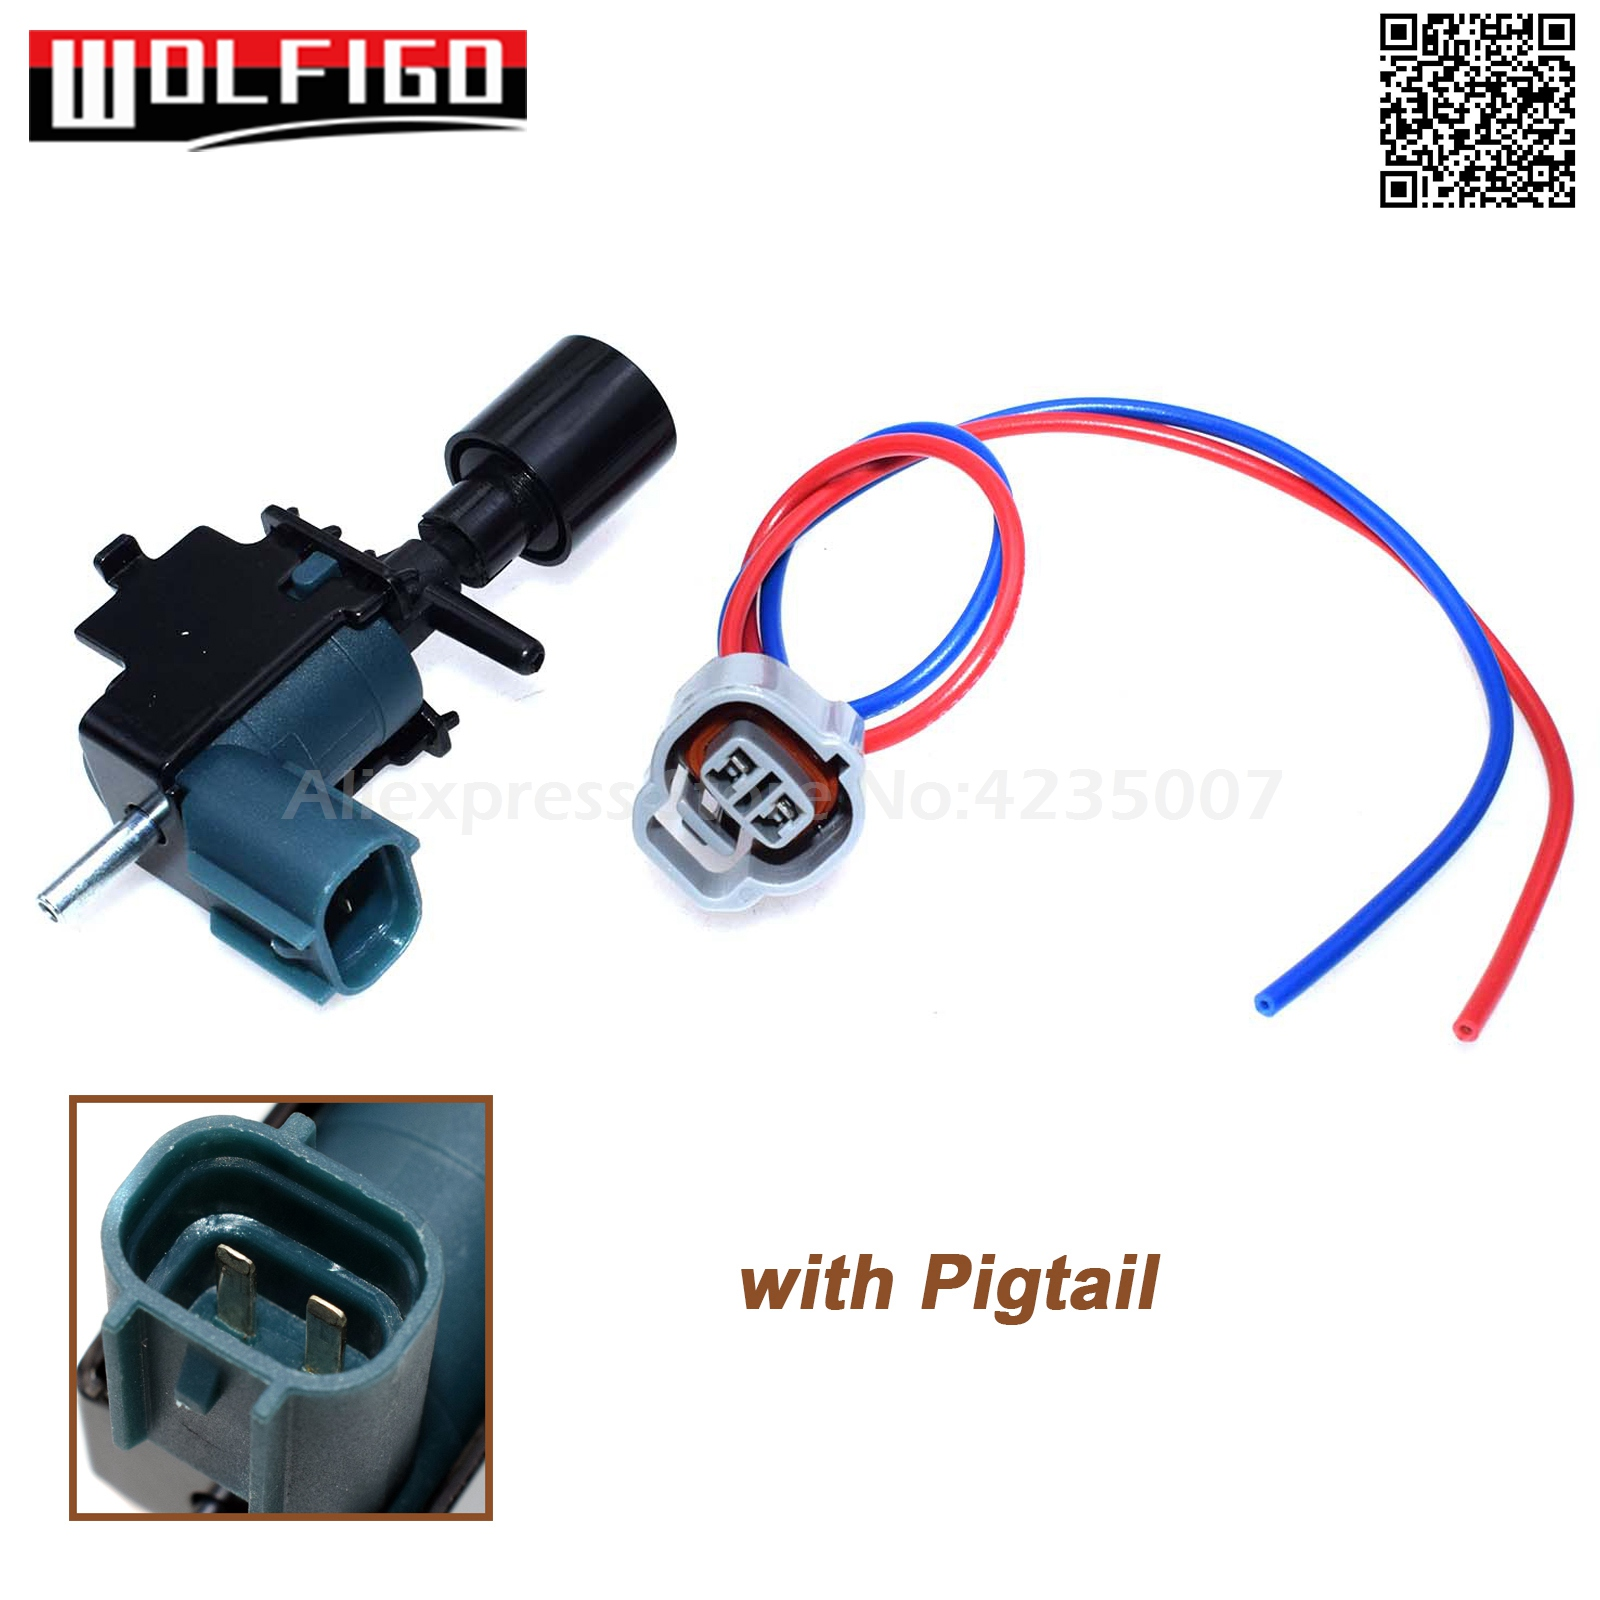 WOLFIGO 25860-74160, 25860-74050 Vacuum Switching Valve W/ Pigtail Wire For Toyota Avalon Camry 3.0 V6 9091012080,228207,PT1028